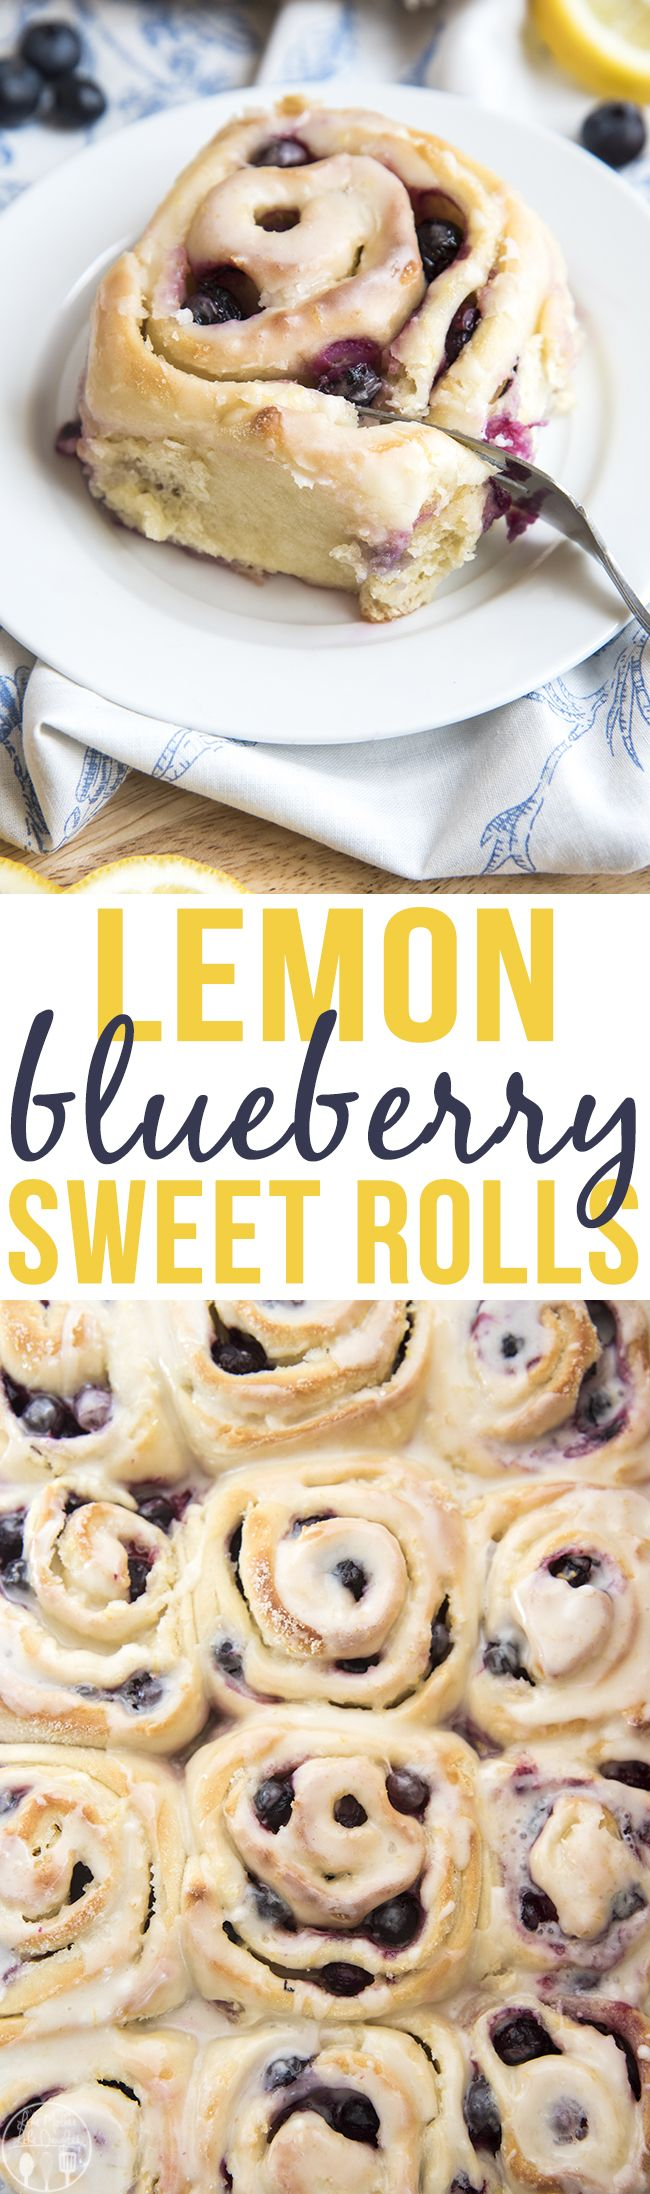 Lemon Blueberry Sweet Rolls - These lemon blueberry sweet rolls are perfectly soft and fluffy rolls bursting full of juicy blueberries